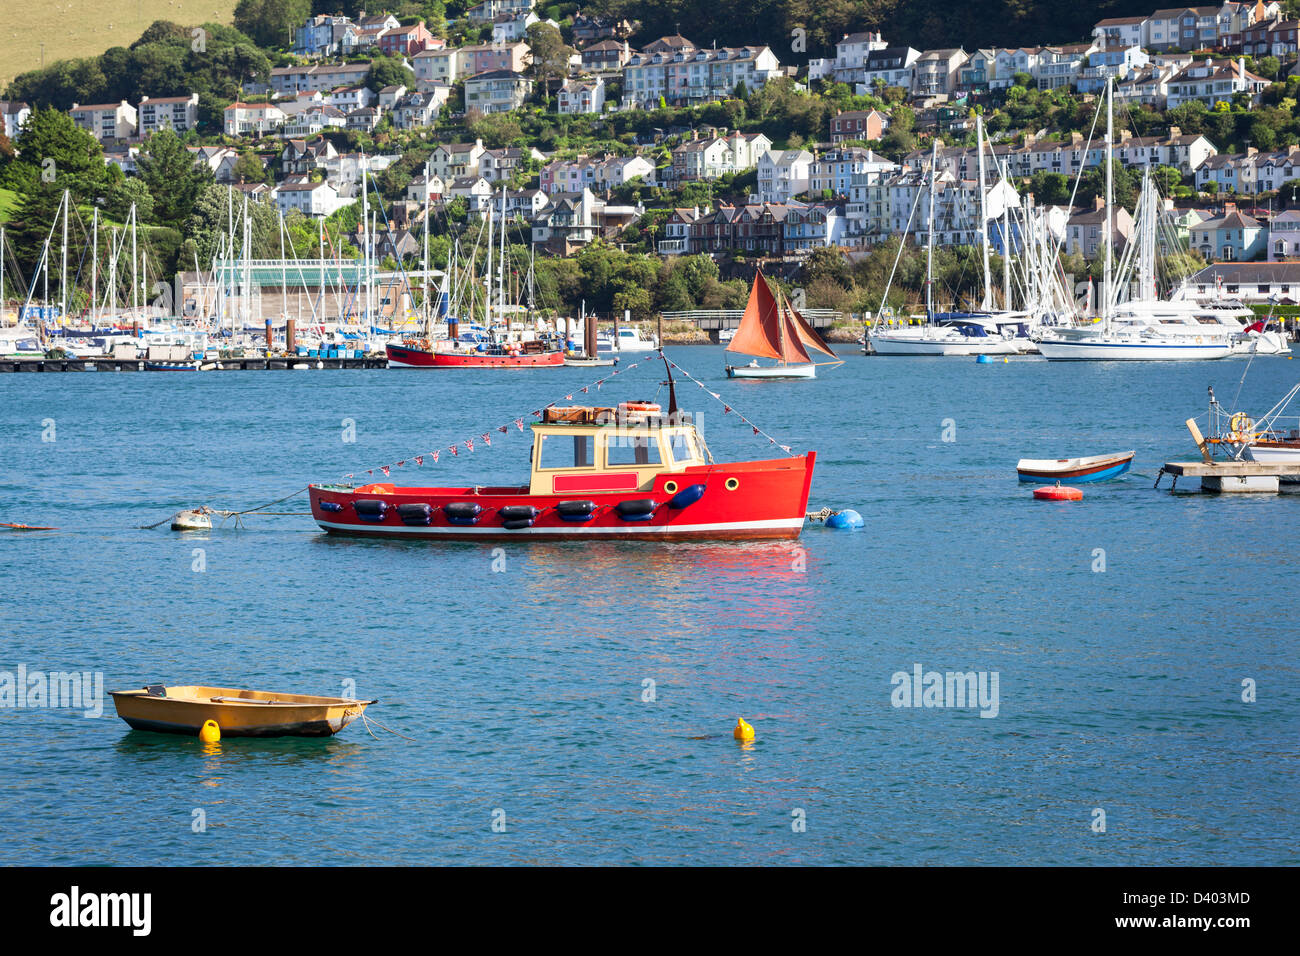 Boats on the river Dart in Dartmouth, South Devon. The town of Kingswear can be seen in the background. - Stock Image